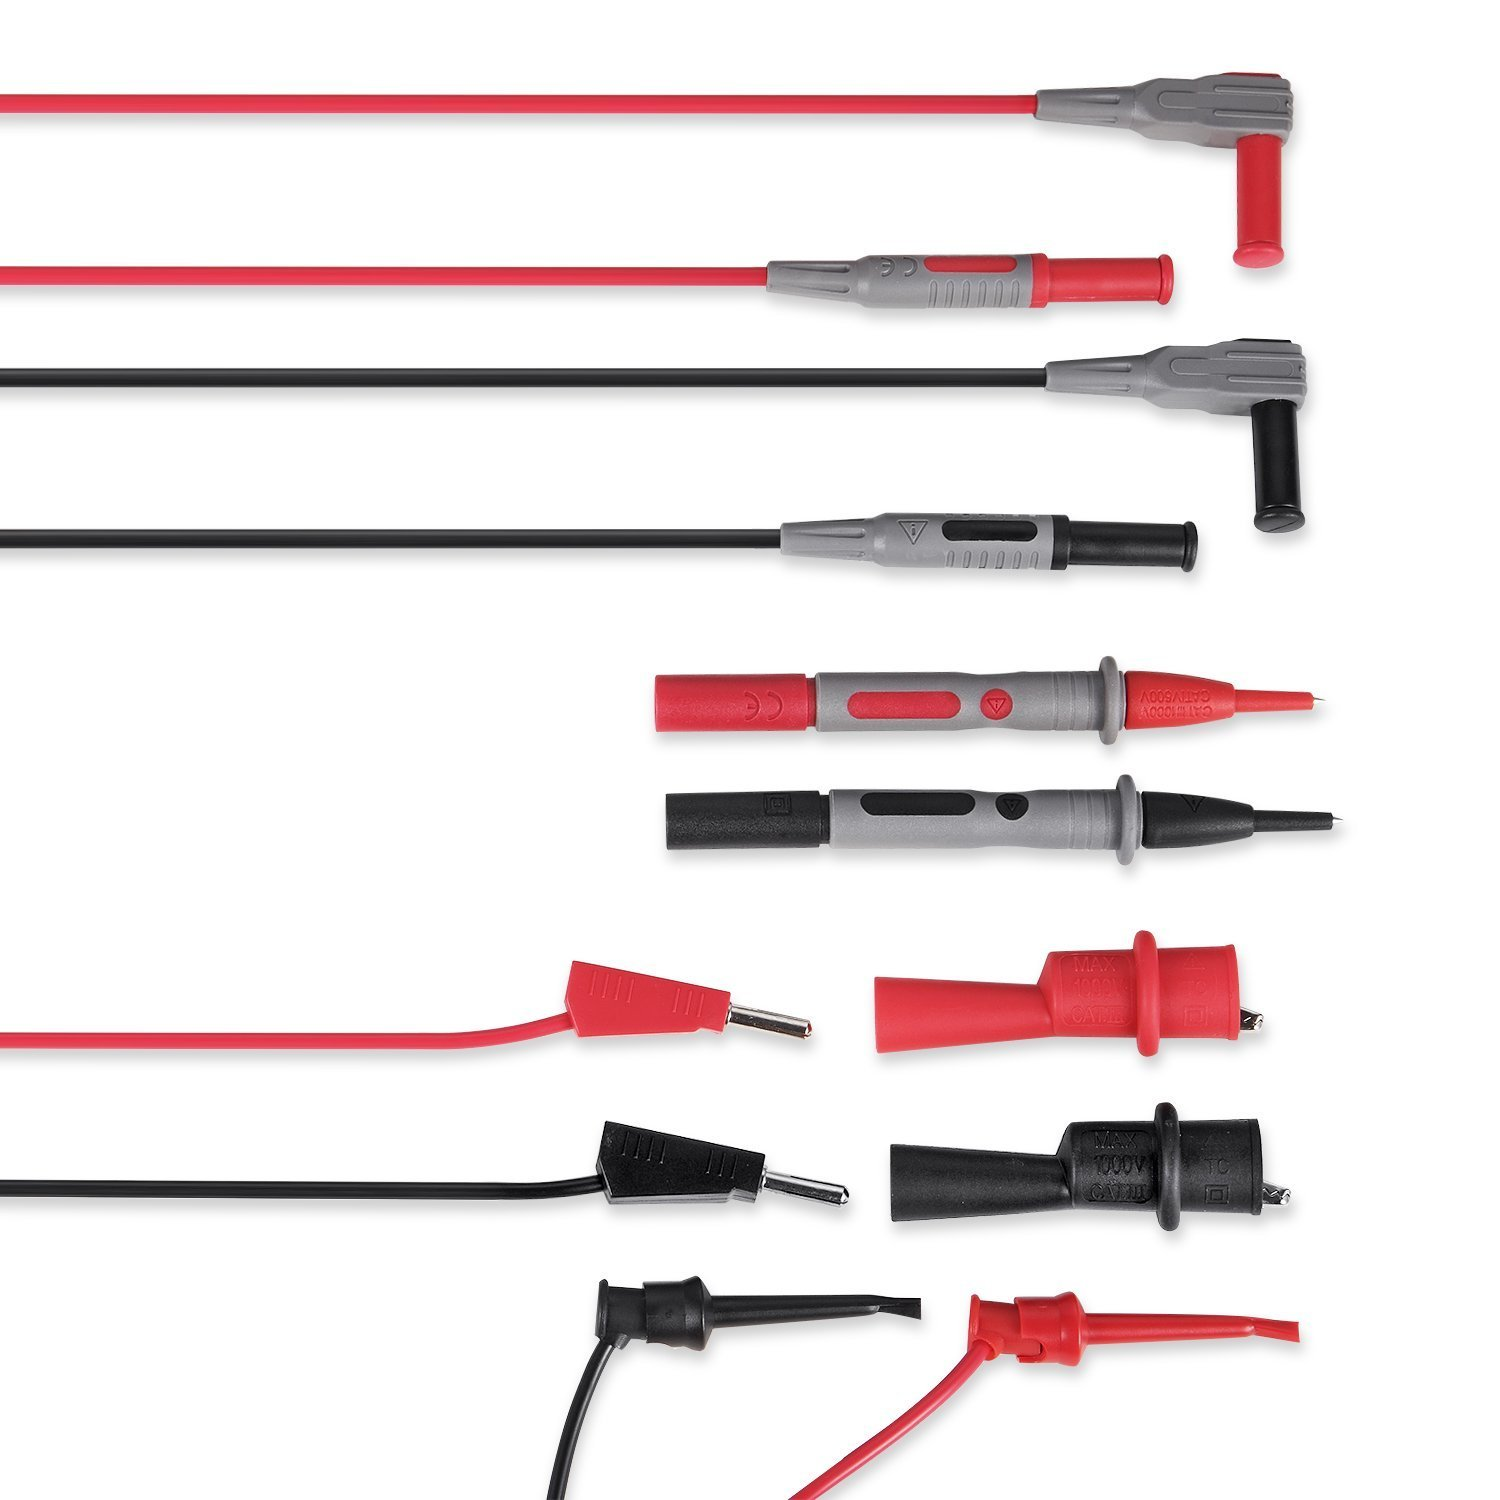 AstroAI Multimeter Electronic Test Leads Kit with Alligator Clips and Plunger Mini Hooks, Probes Upgraded To CAT IV by AstroAI